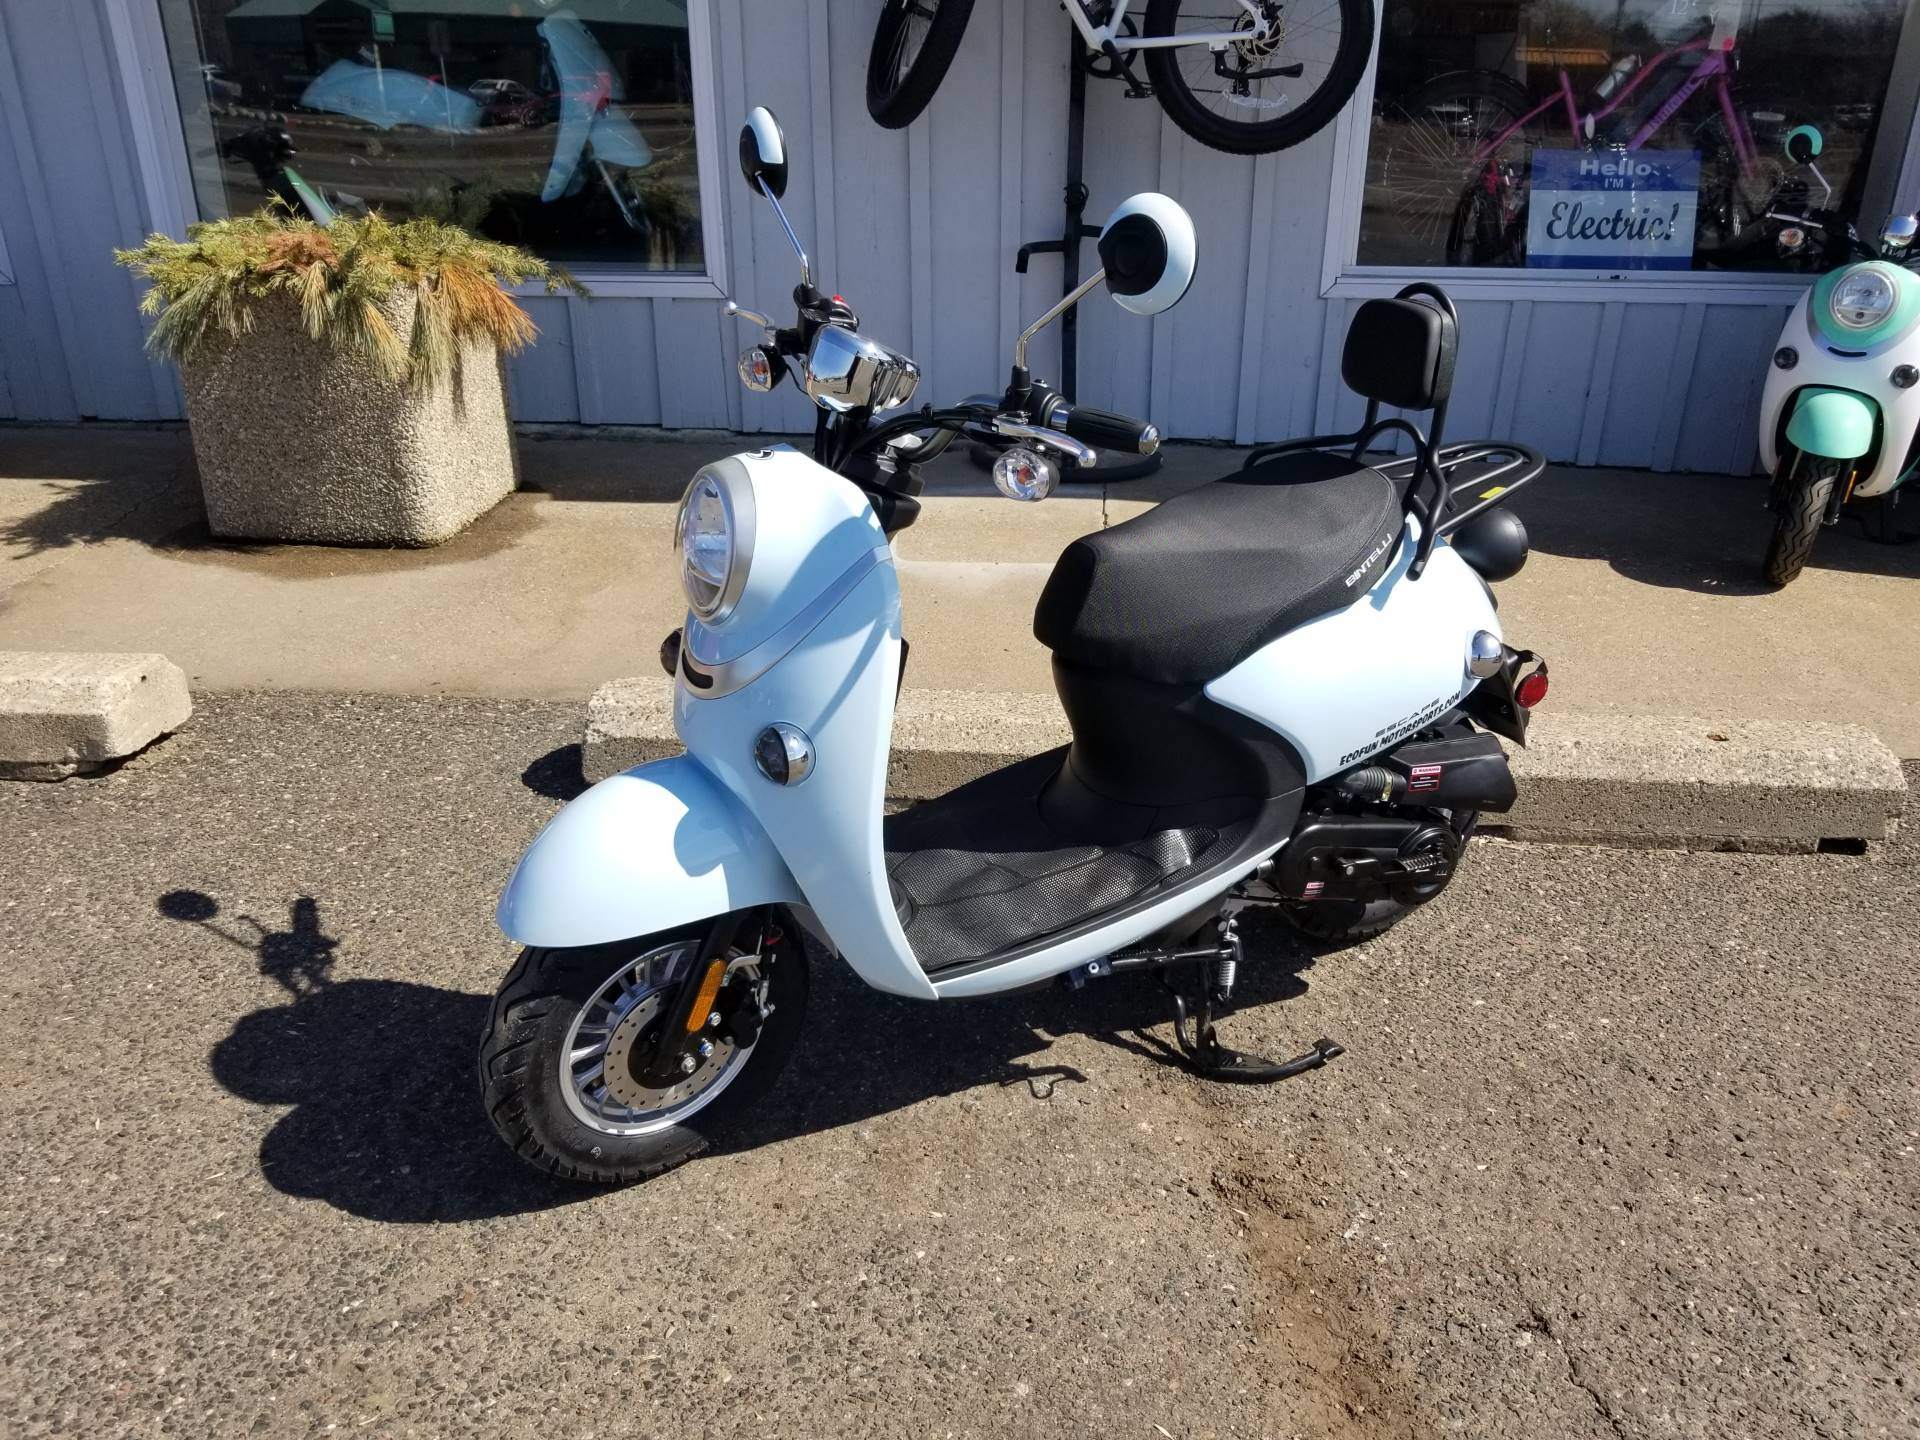 2021 Bintelli  Escape 49cc Scooter in Forest Lake, Minnesota - Photo 2